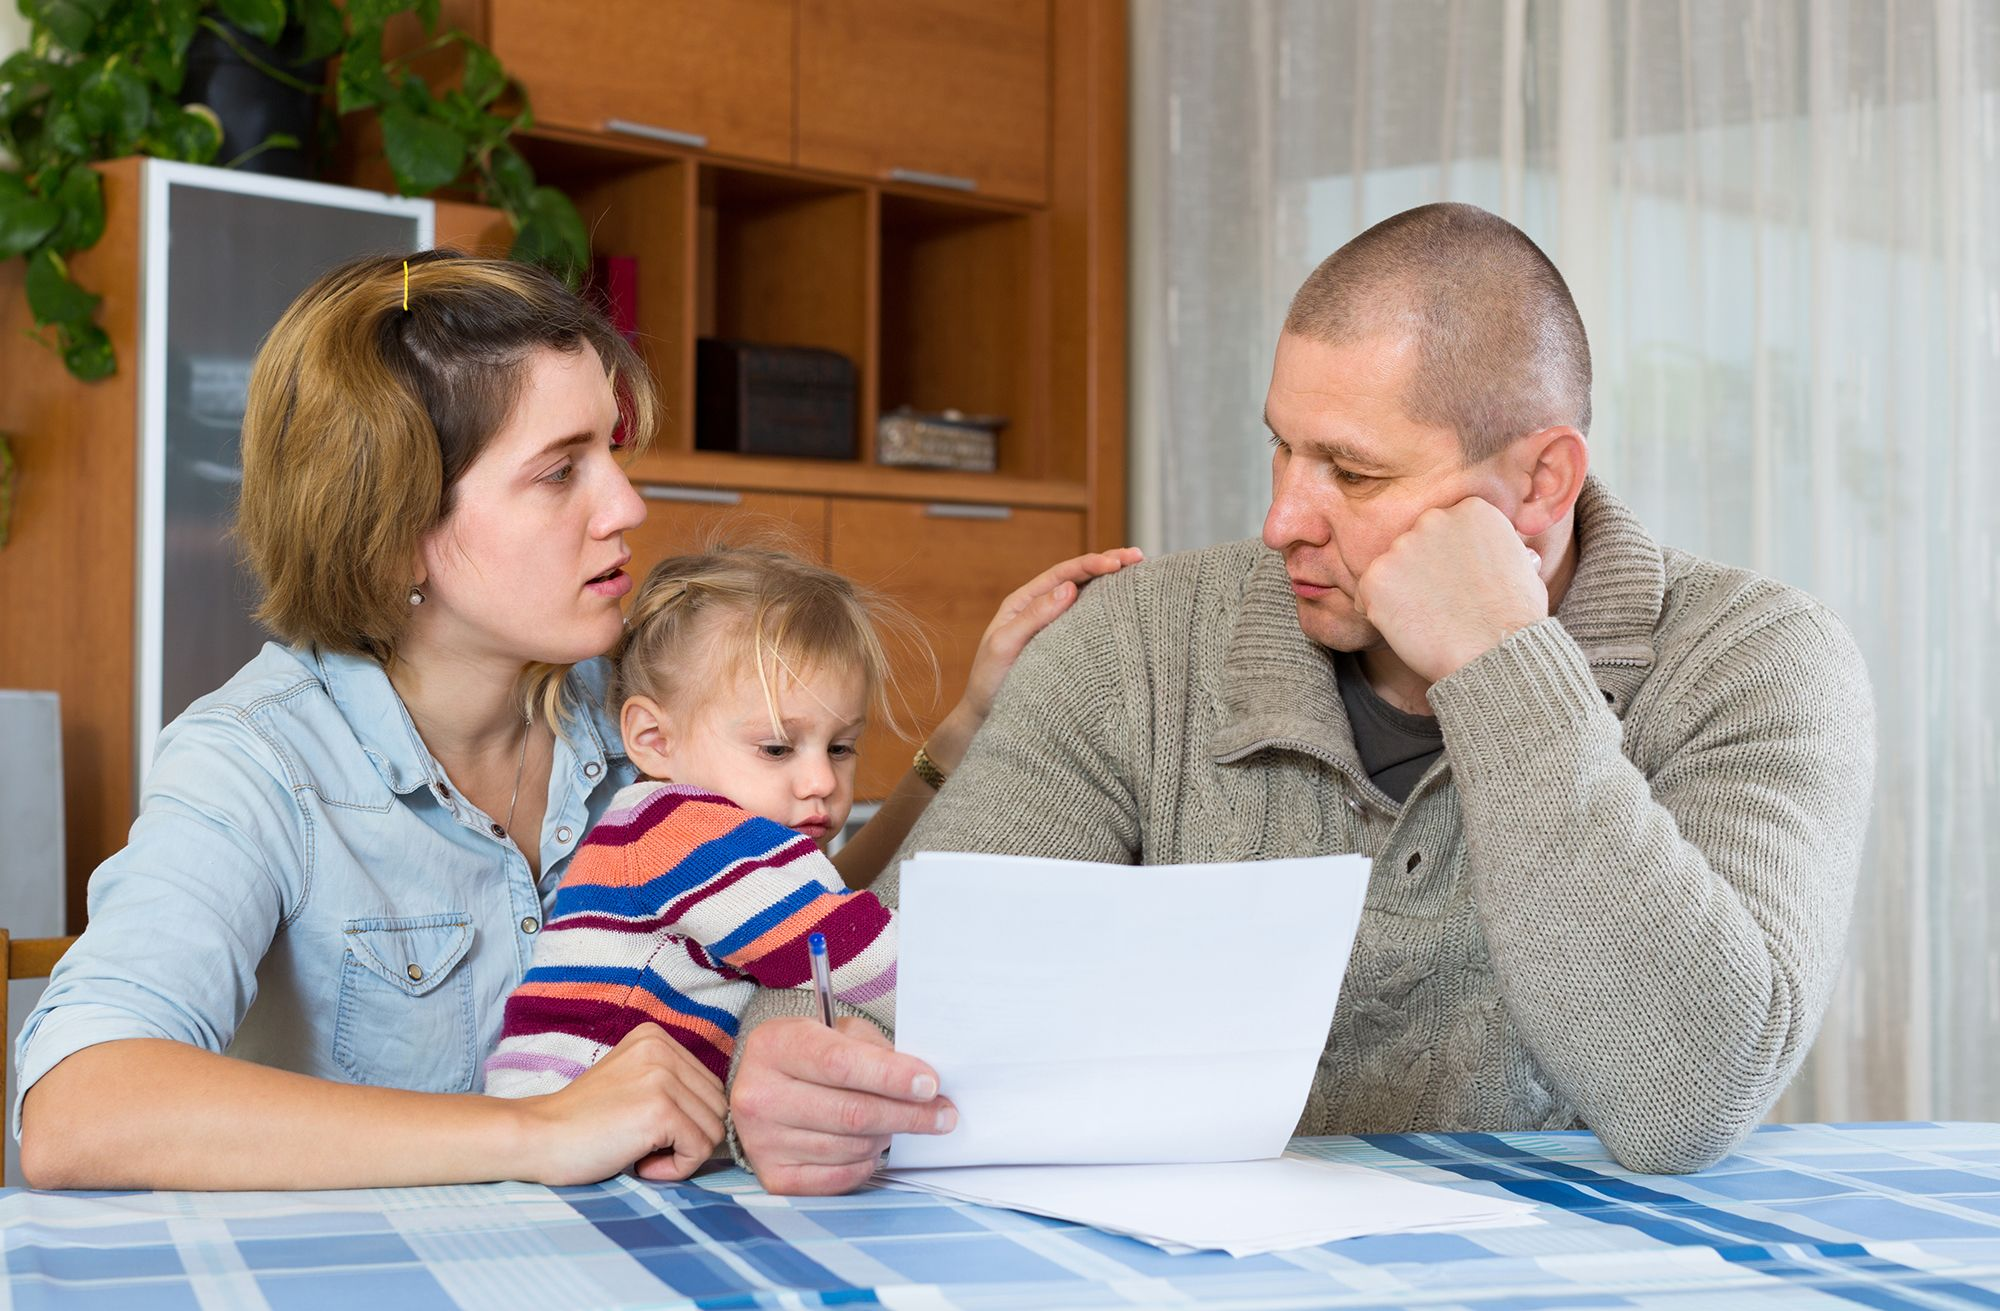 A family going over paperwork